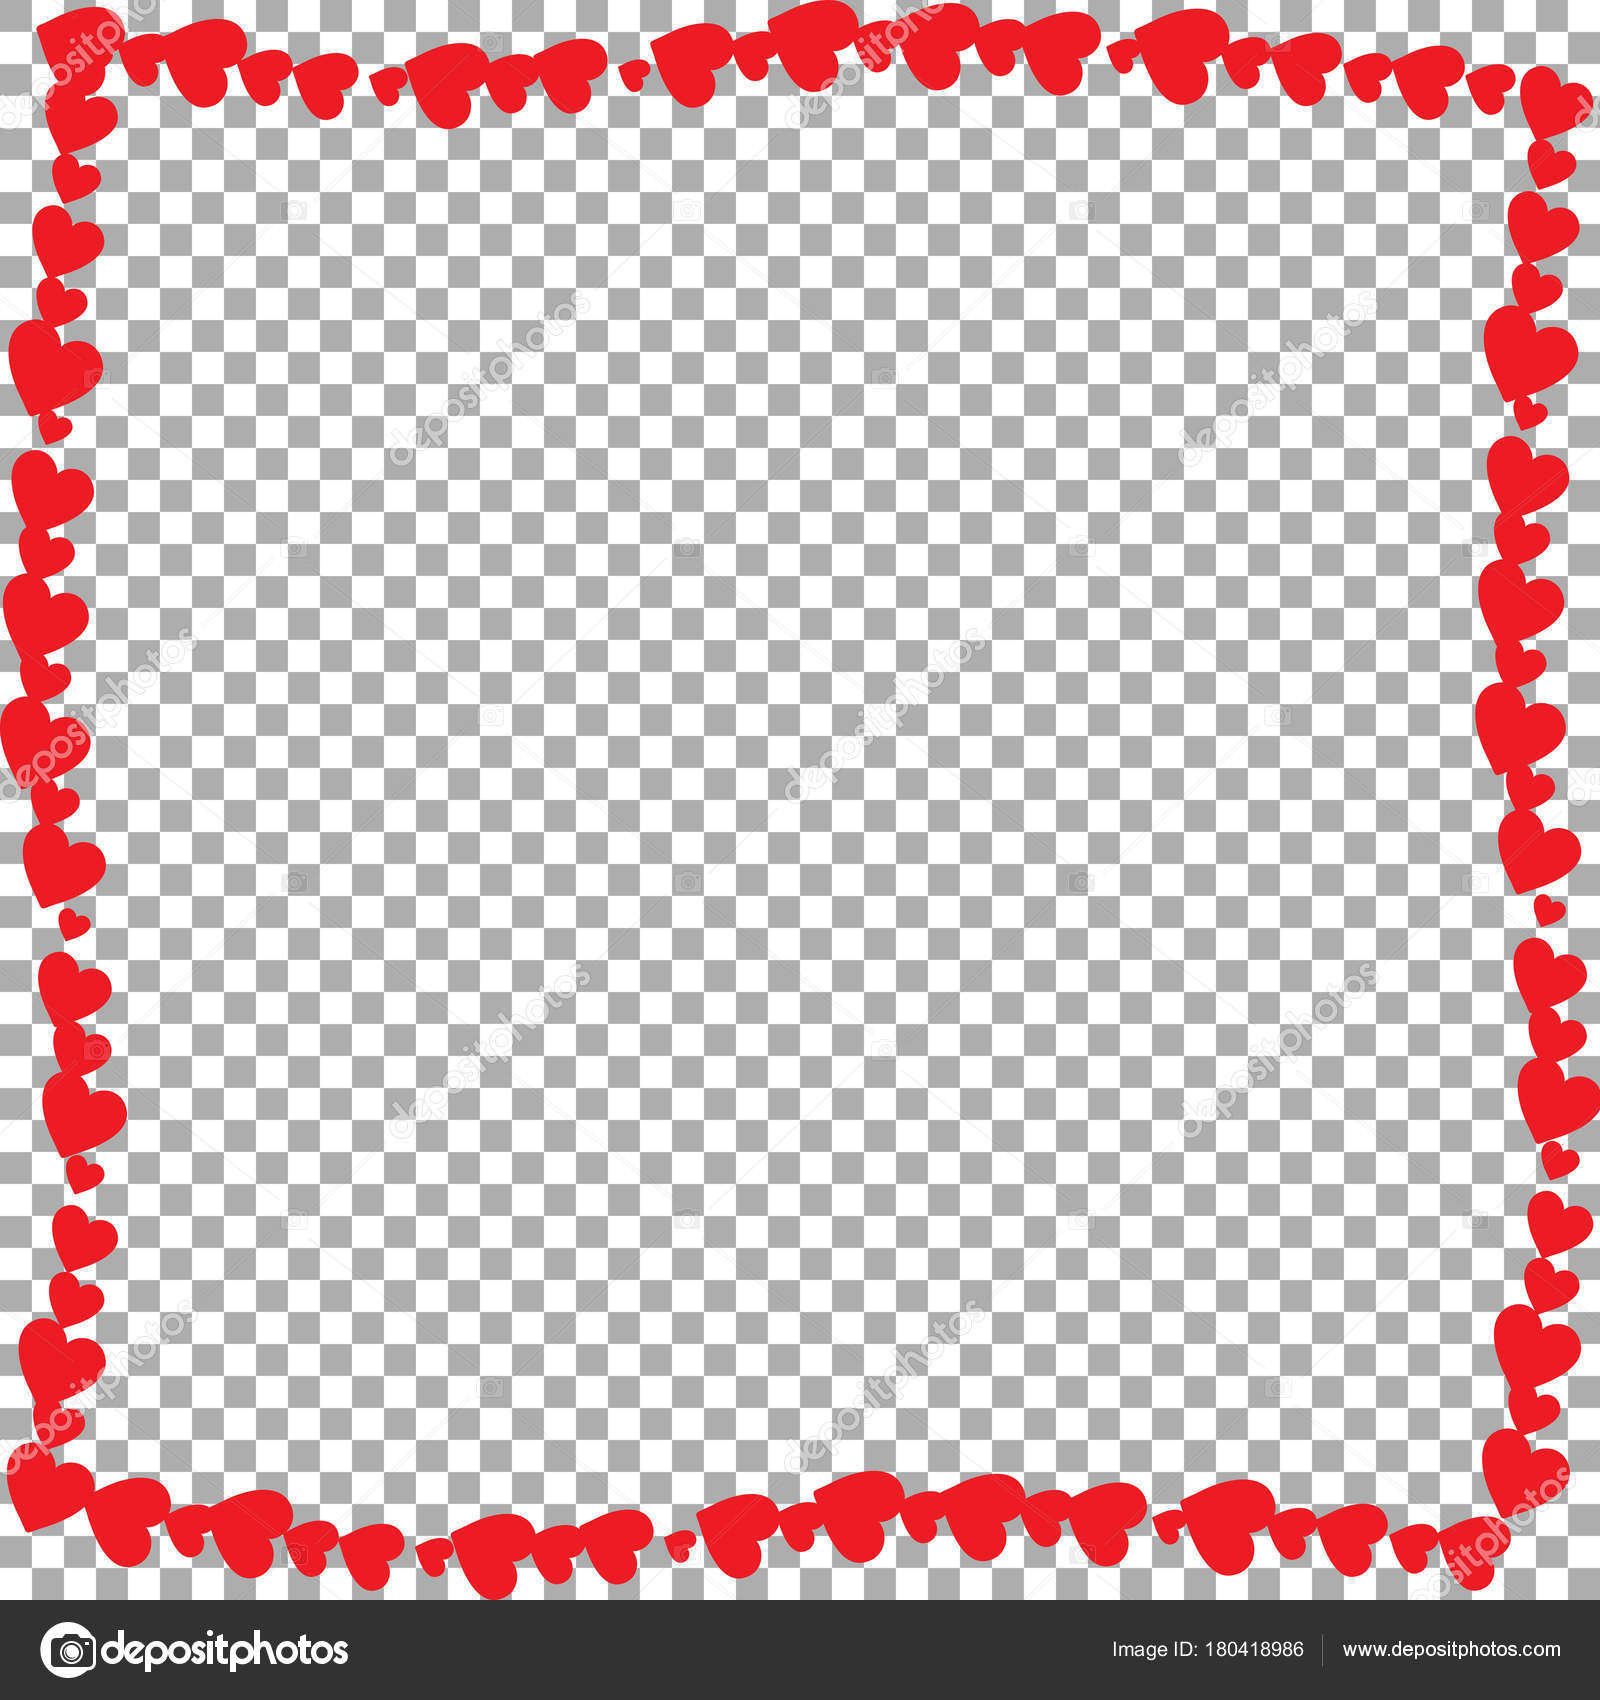 Love wavy frame made of cartoon red different sized hearts — Stock ...